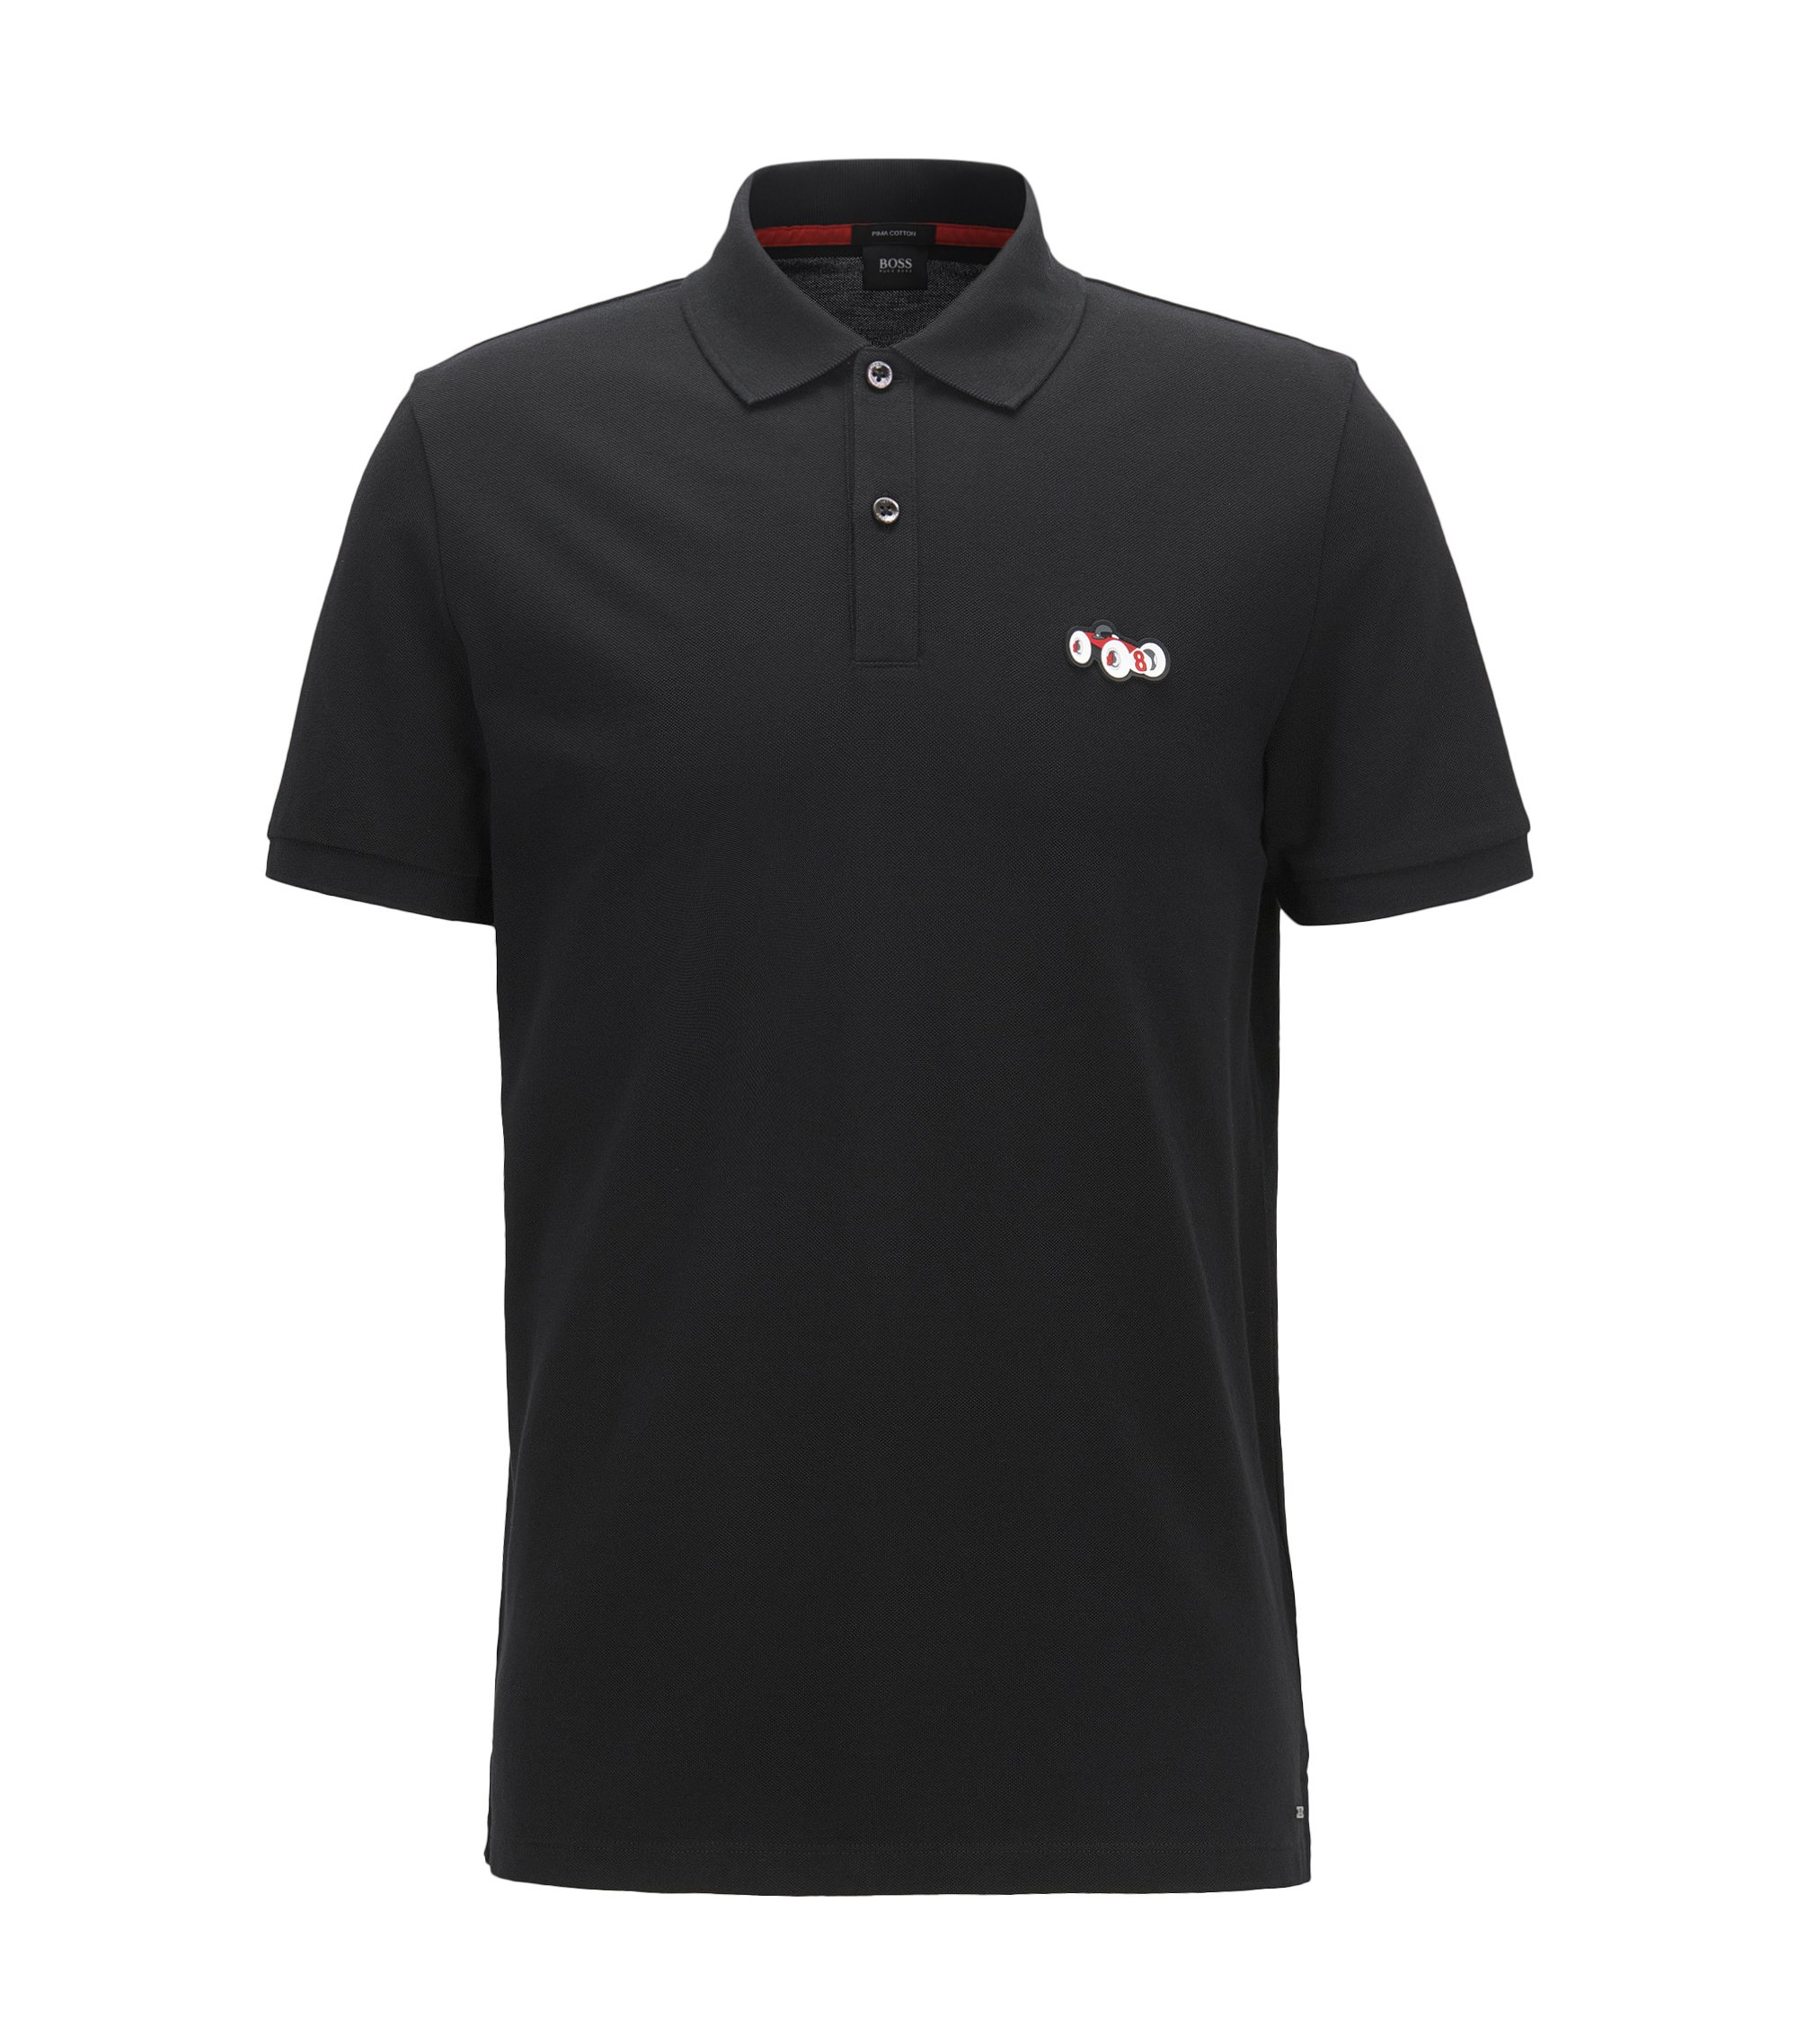 Polo Regular Fit en coton, au motif voiture de course, Noir